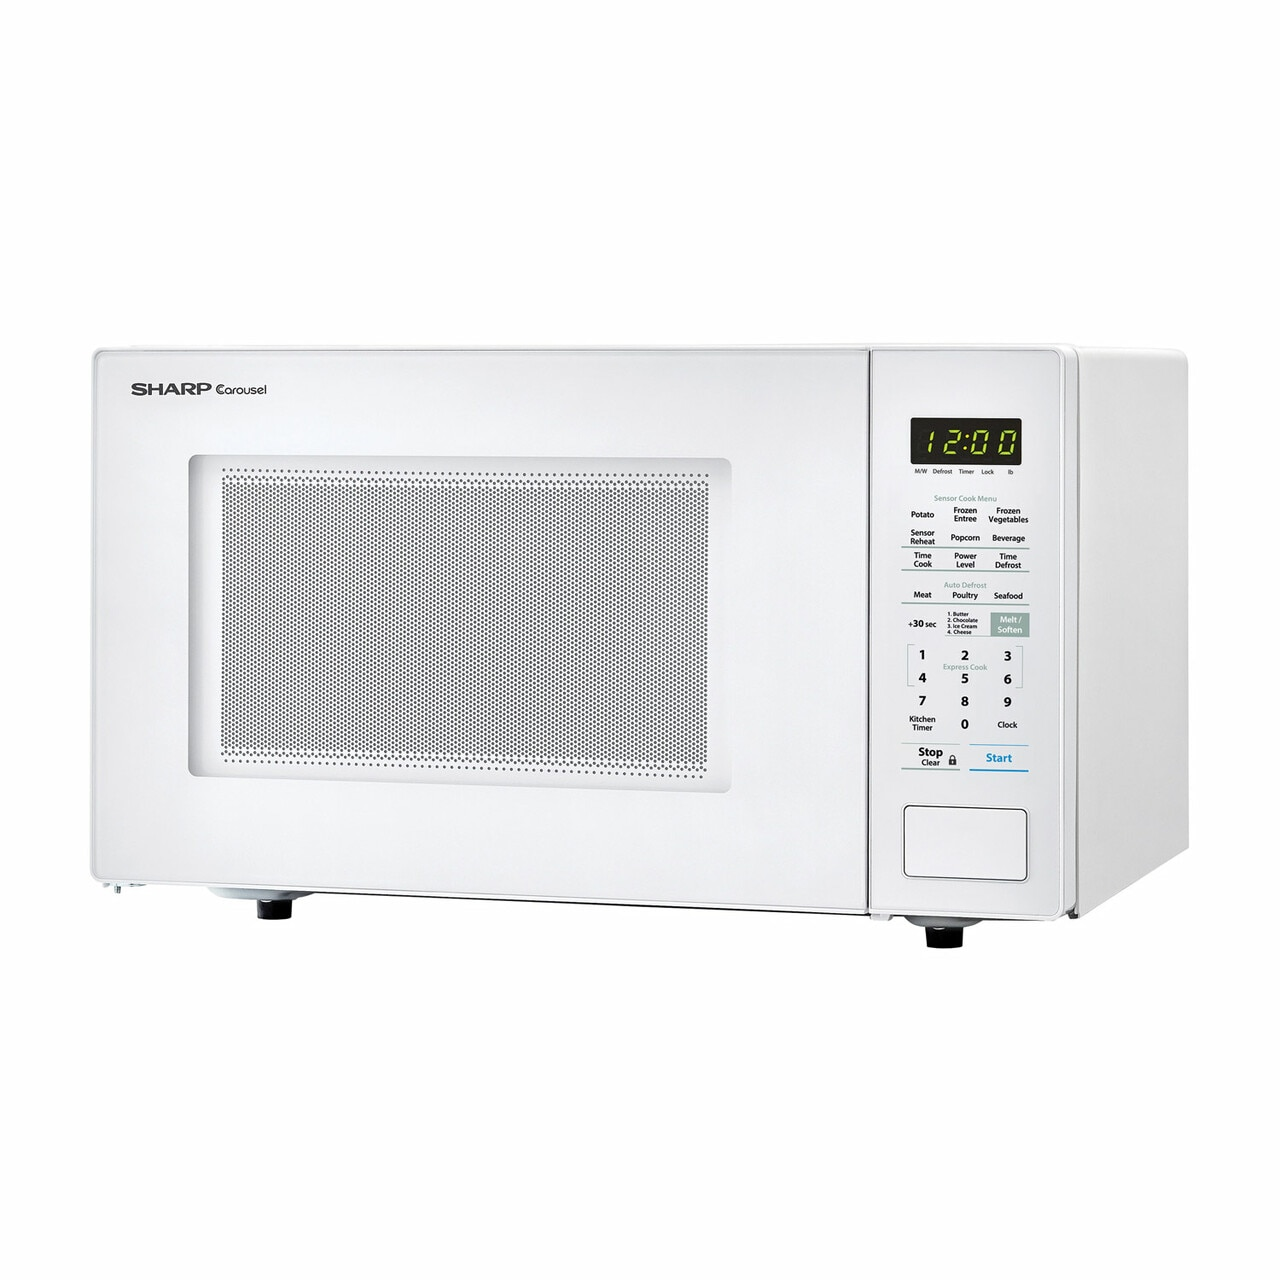 1.4 cu. ft. Sharp White Countertop Microwave (SMC1441CW) – left angle view